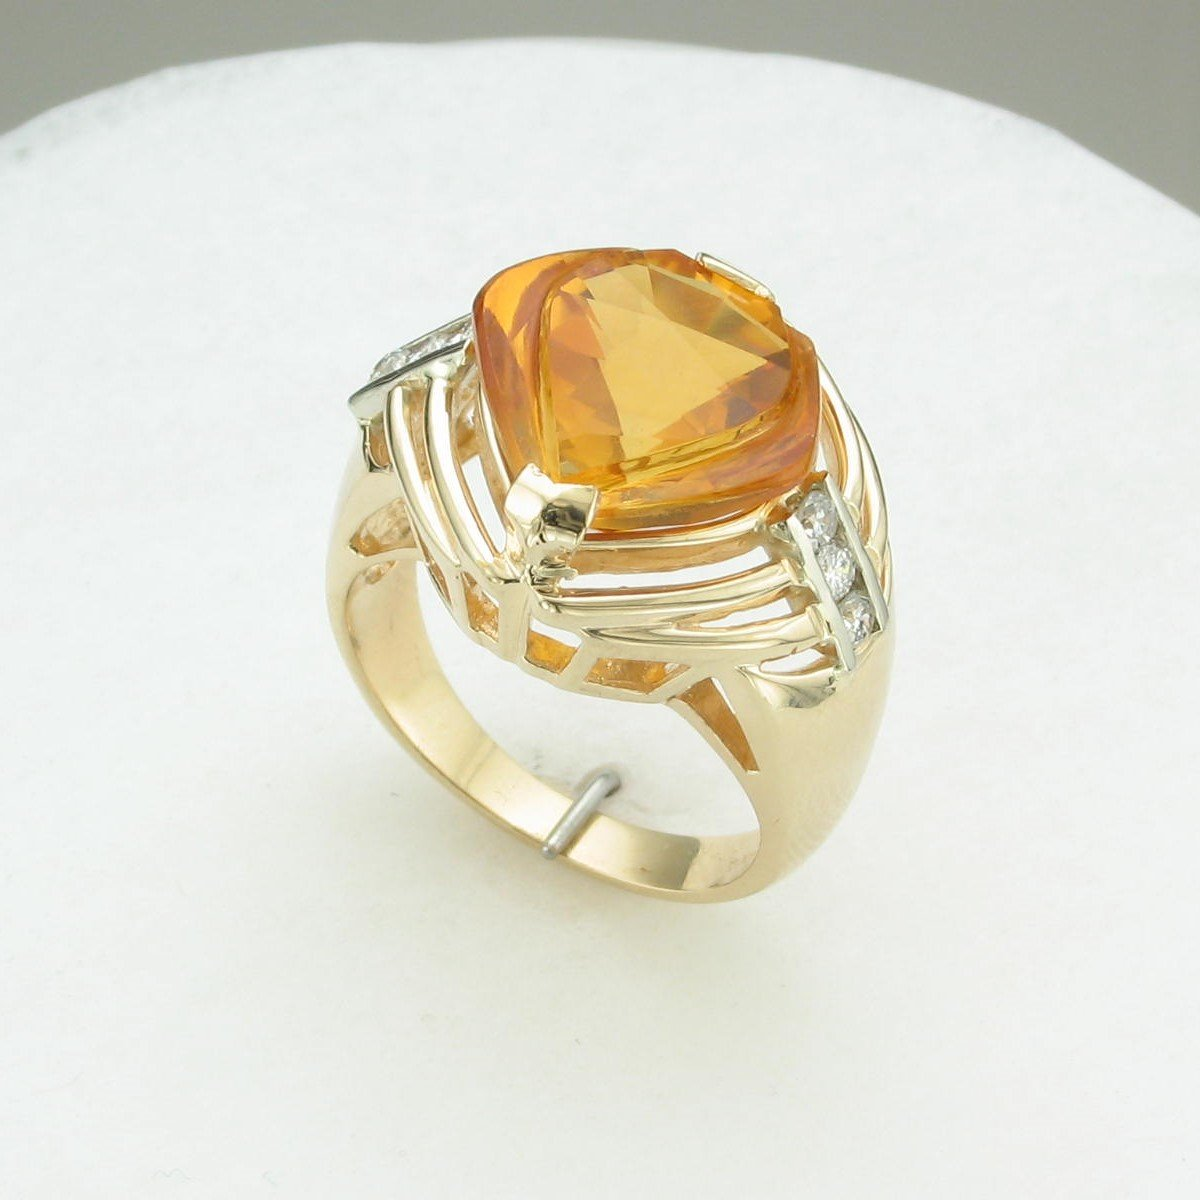 Fantasy Cut Ctitrine with Diamond Accent Ring set in 14k Yellow Gold